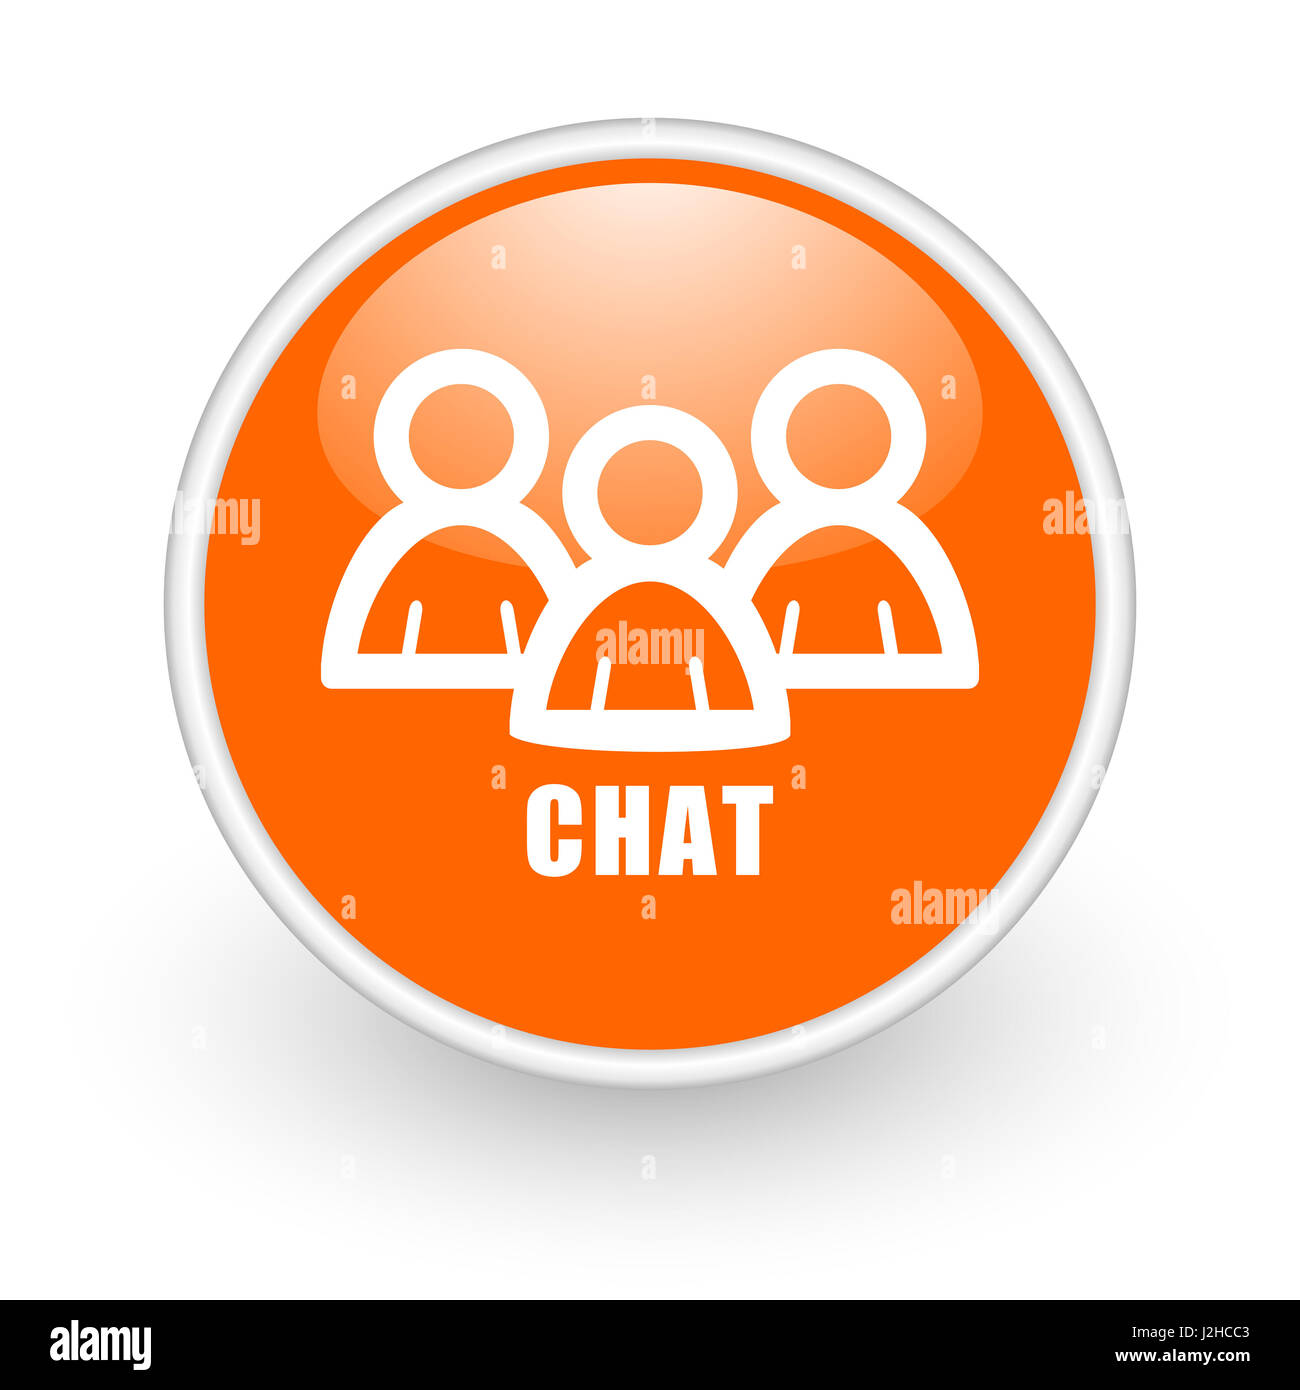 Chat icon stock photos chat icon stock images alamy - Chat orange ...